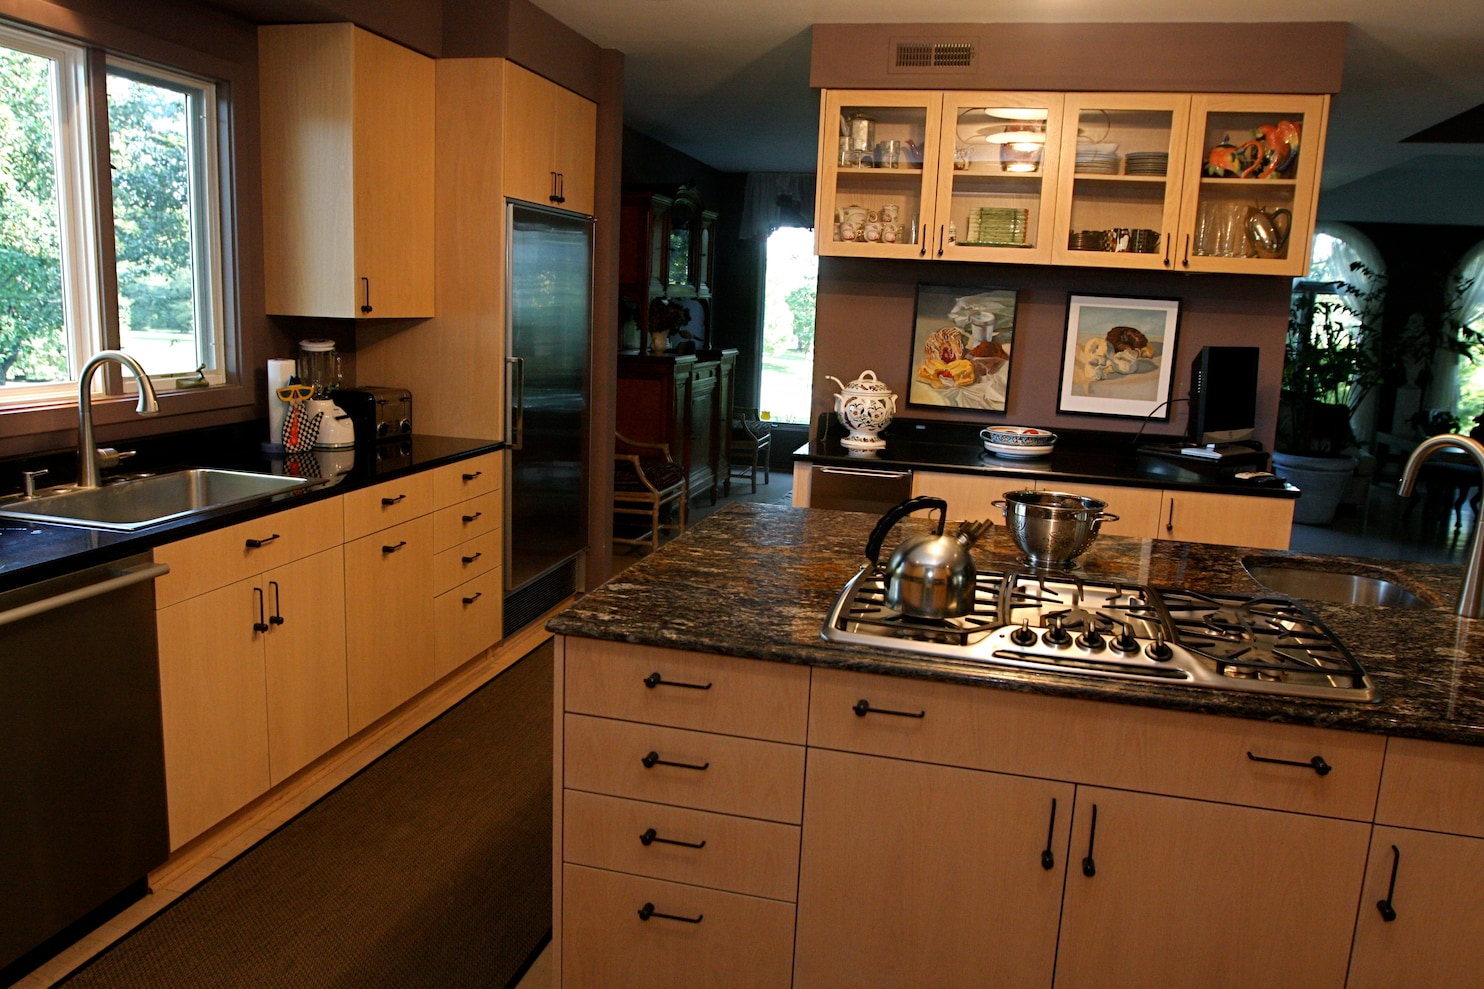 for kitchen and bathroom remodeling, finding ways to cut costs - the